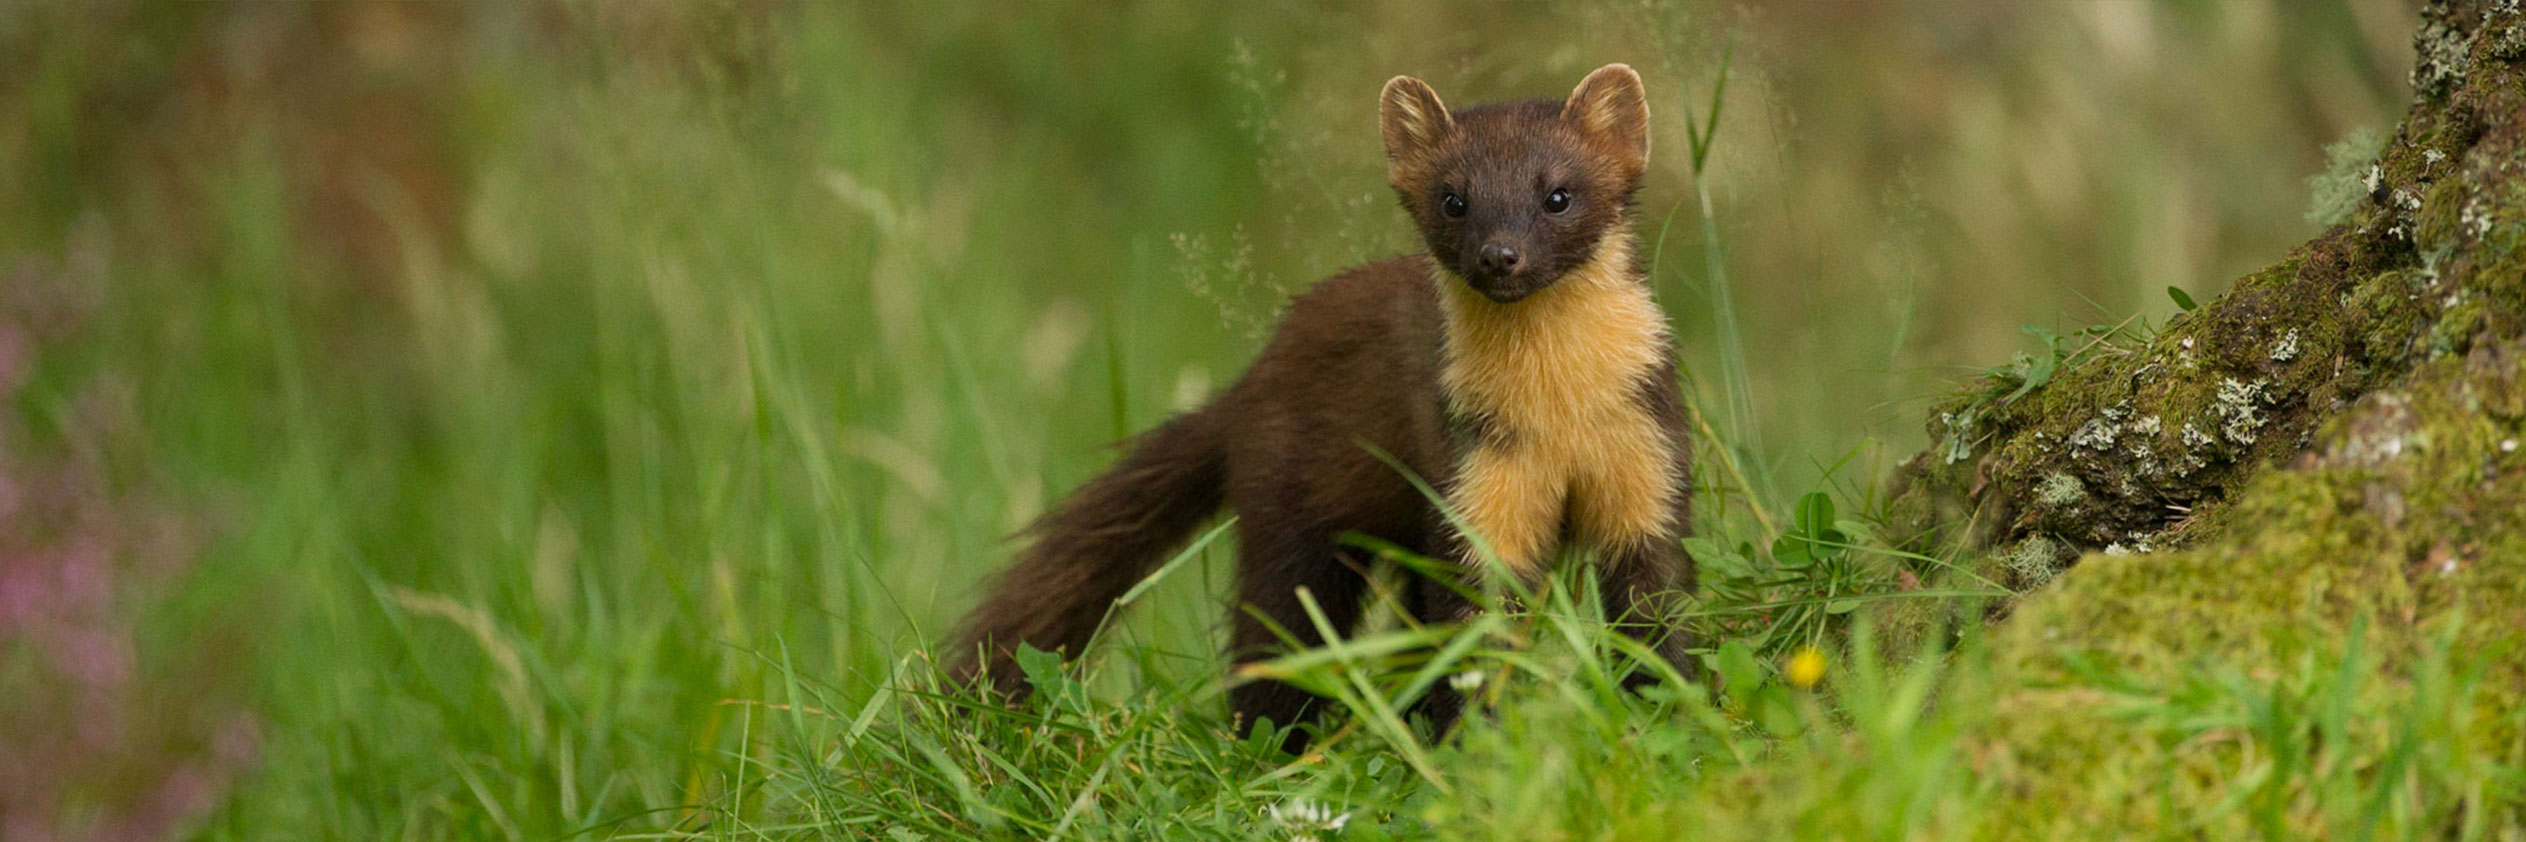 CATCHING UP WITH THE ELUSIVE PINE MARTEN